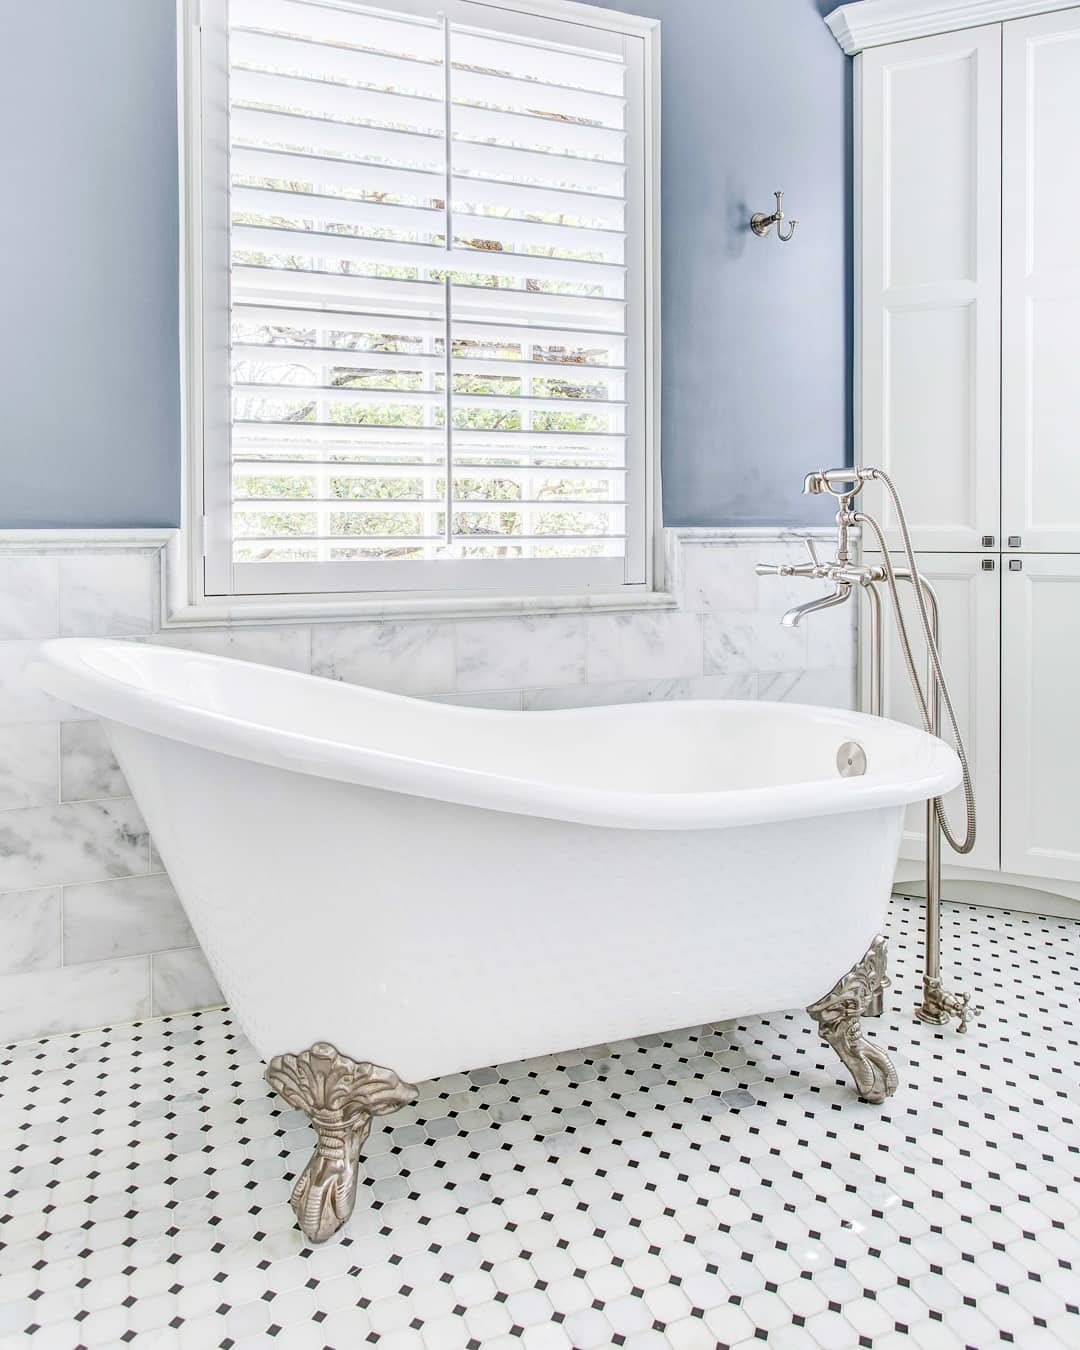 newport brass traditional freestanding clawfoot tub filler with handshower and lever handles in polished nickel - the ultimate guide to luxury plumbing by the delight of design